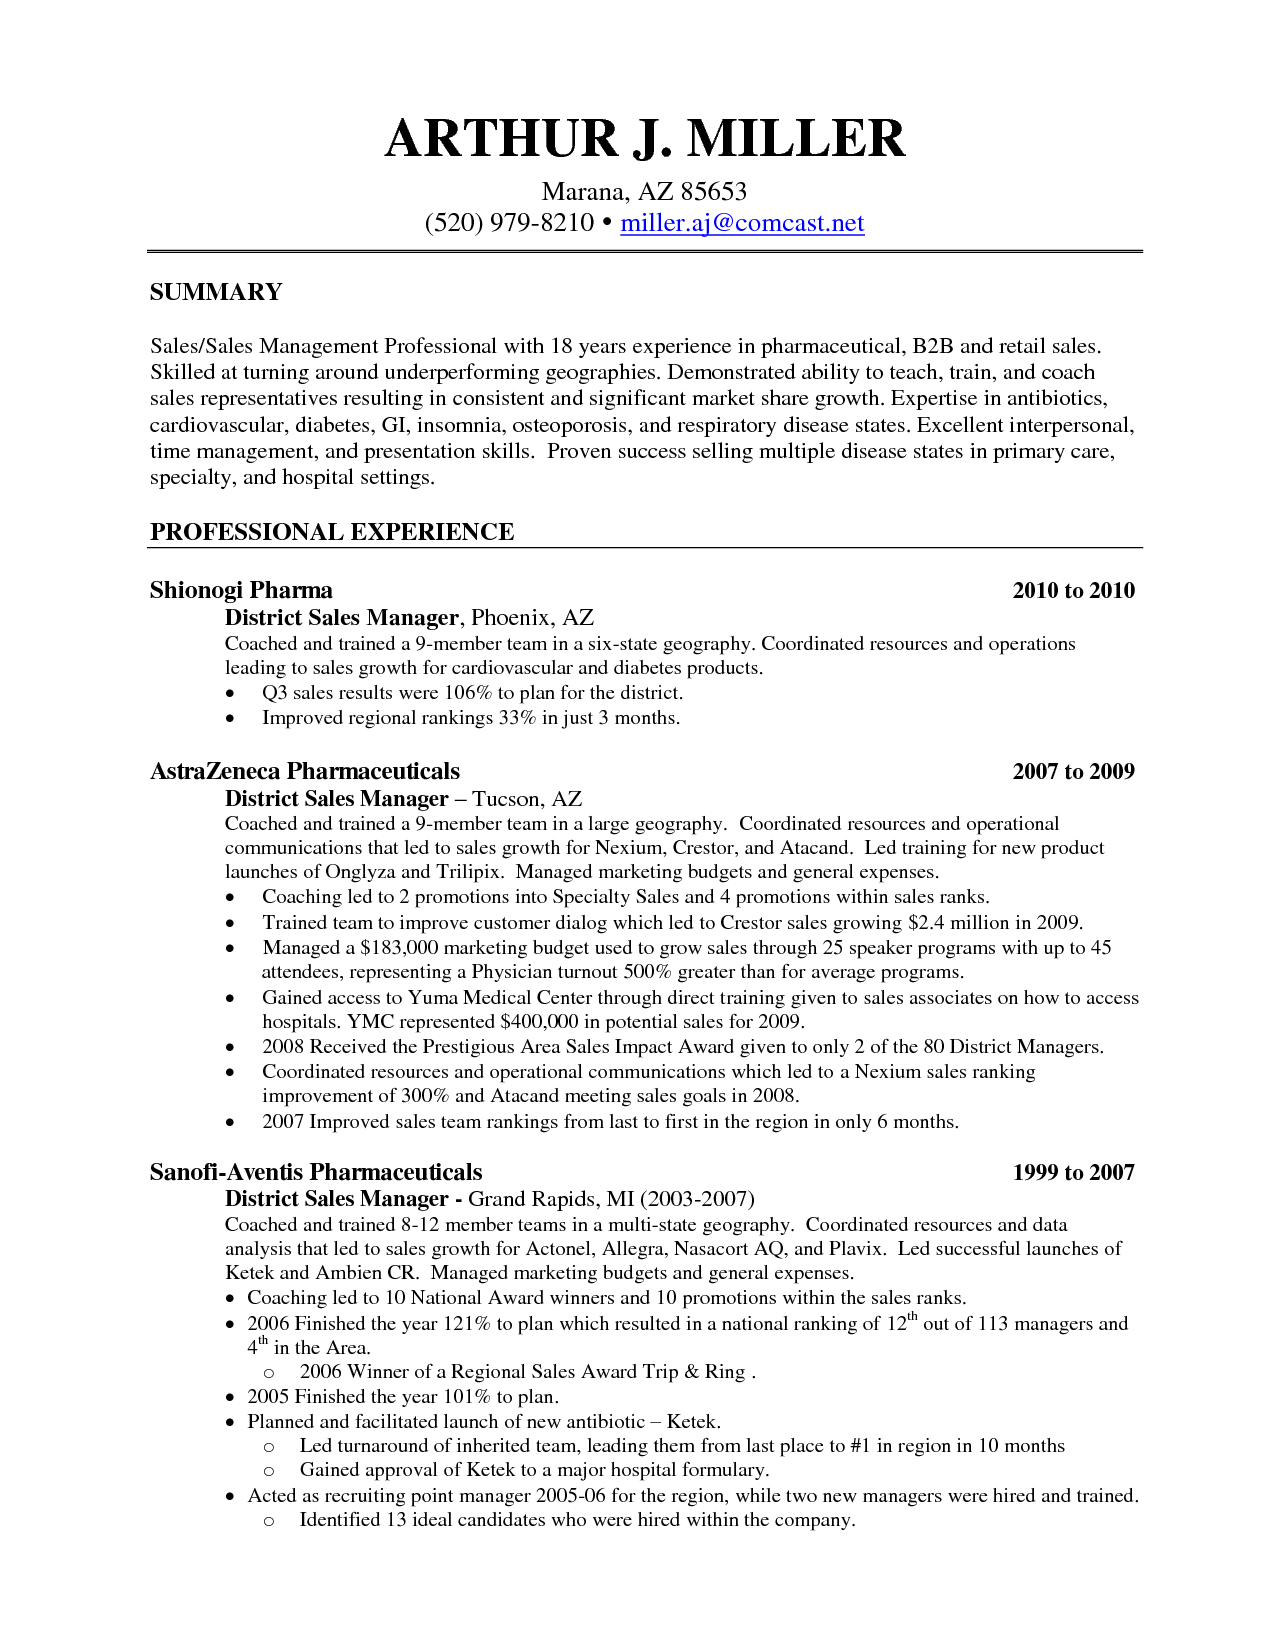 Resume Examples Nordstrom Examples Nordstrom Resume Resumeexamples Http Templatedocs Net Sales Manage Sales Resume Examples Sales Resume Resume Examples